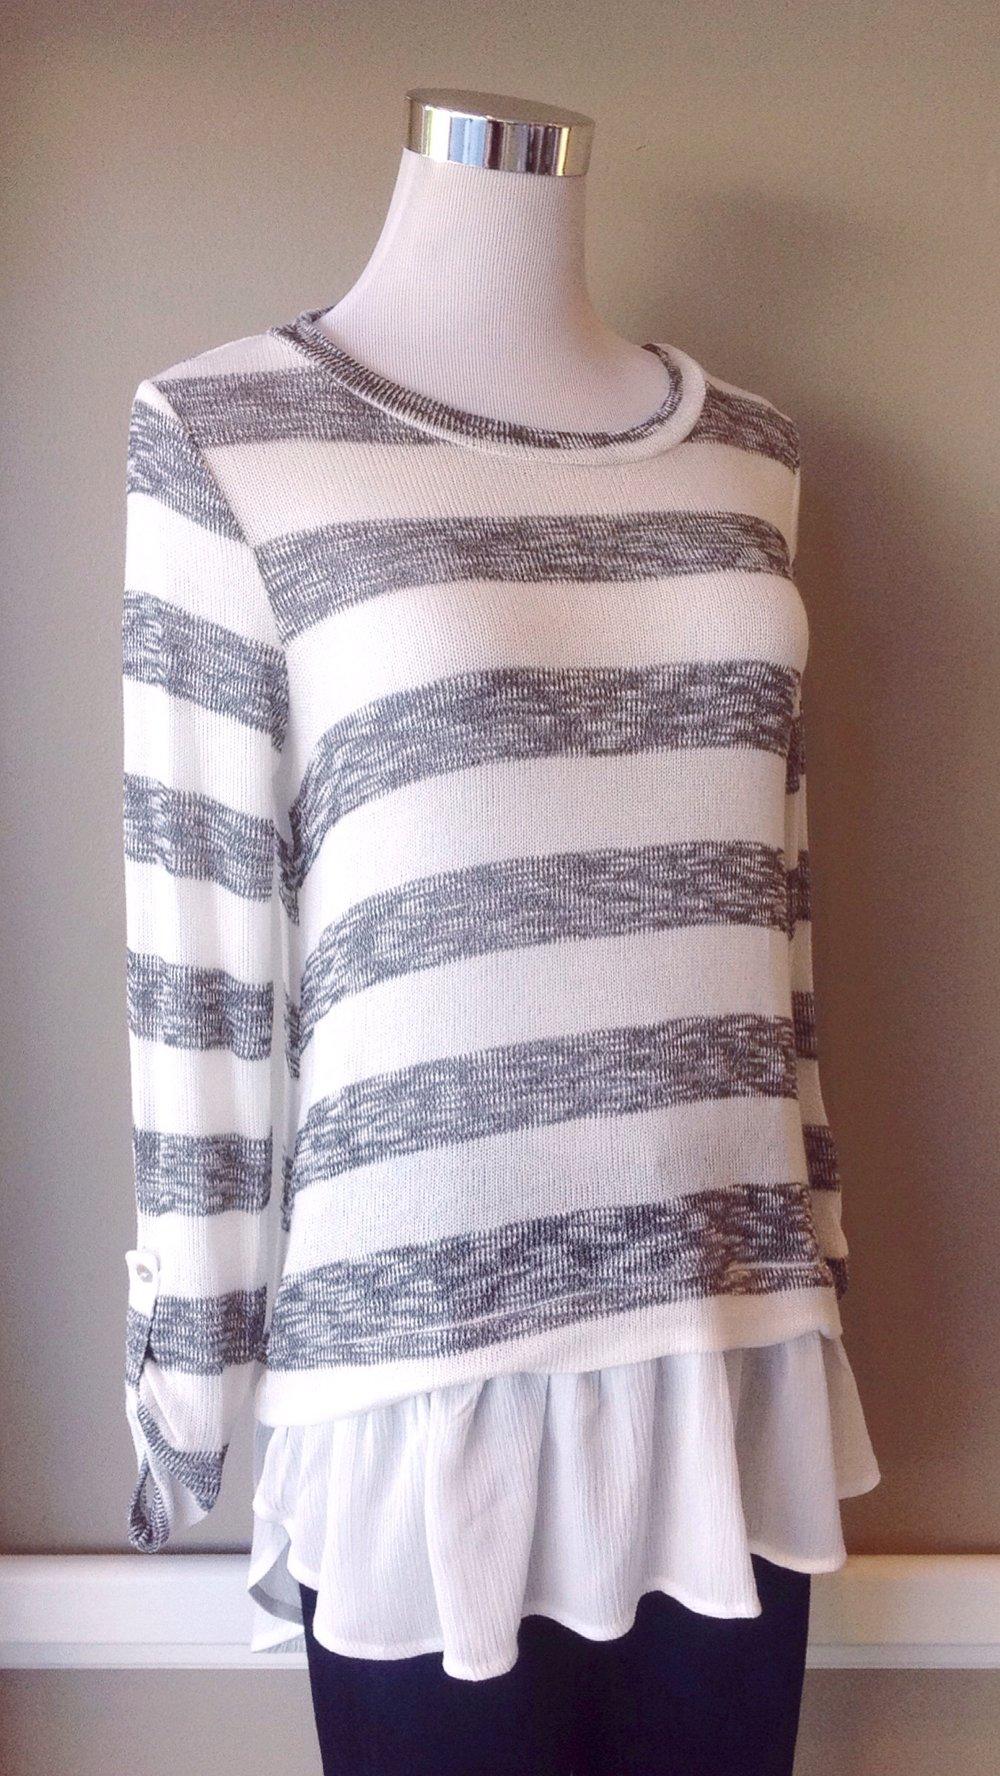 Boatneck stripe top with roll tab sleeves and layered hem in ivory/charcoal, $35